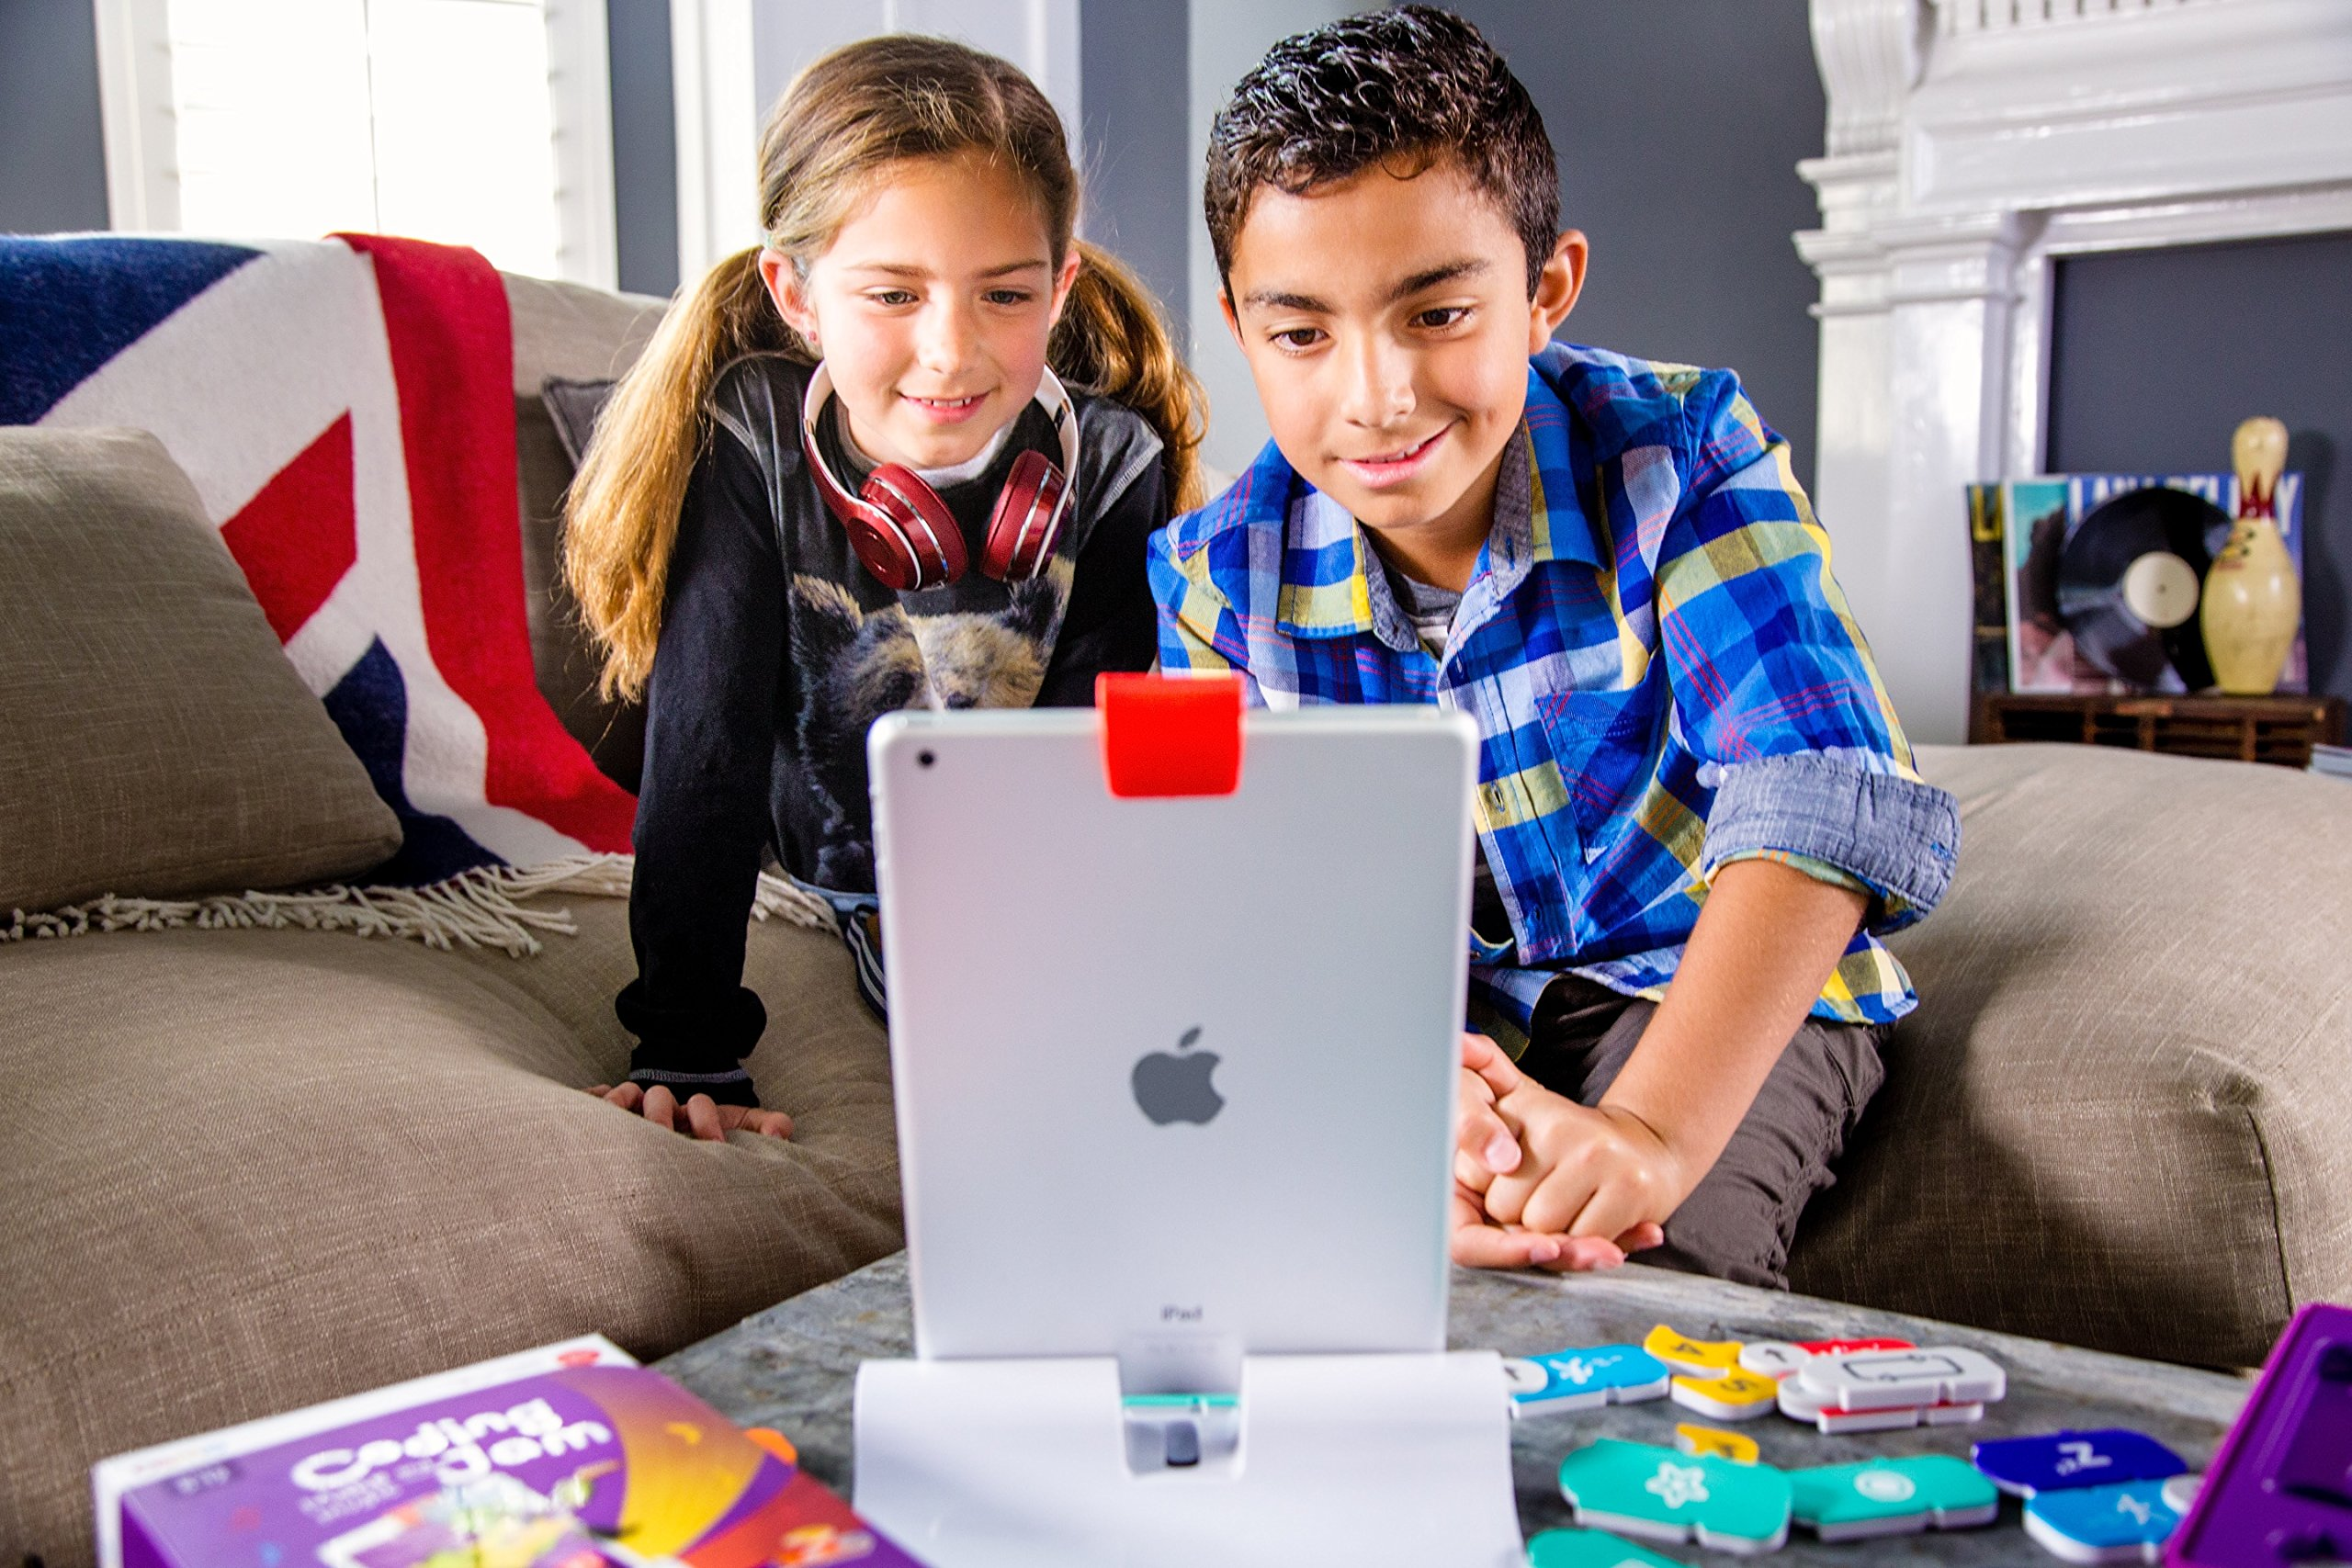 Osmo - Coding Jam - Ages 6-12 - Music Creation, Coding & Problem Solving - For iPad and Fire Tablet (Osmo Base Required) by Osmo (Image #8)